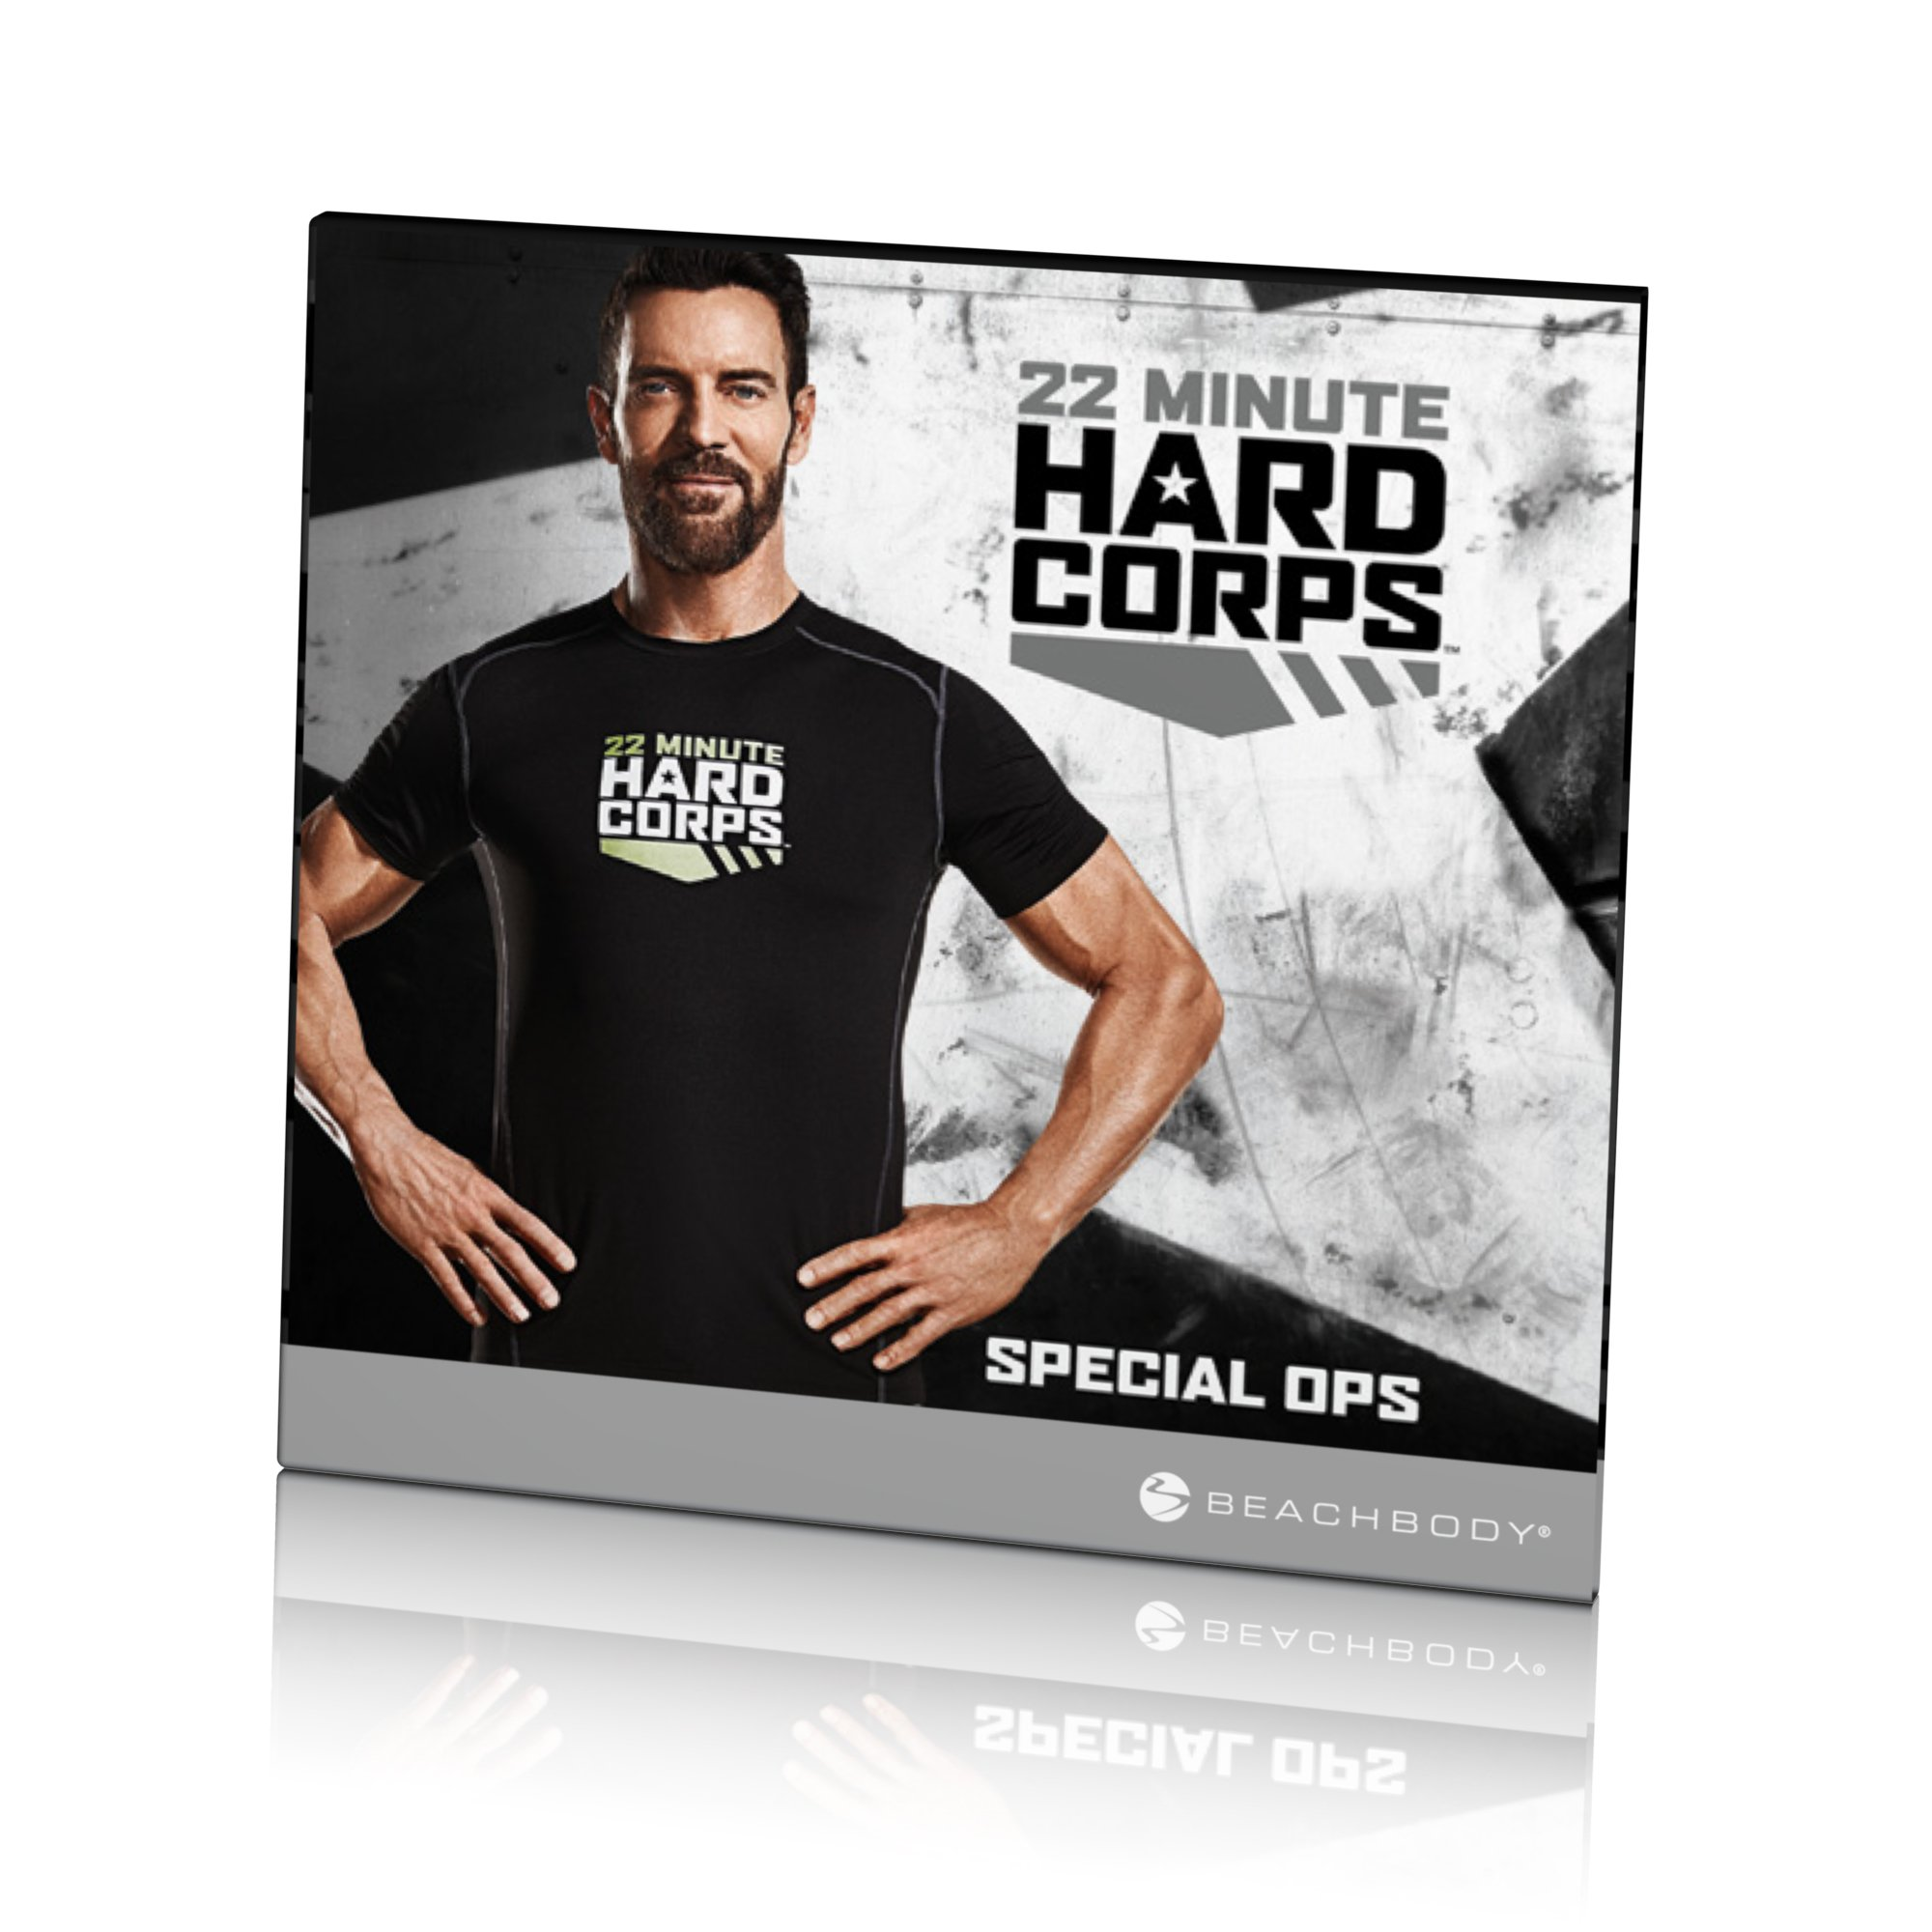 Beachbody Tony Horton's 22 Minute Hard Corps Special Ops Workout DVD by Beachbody